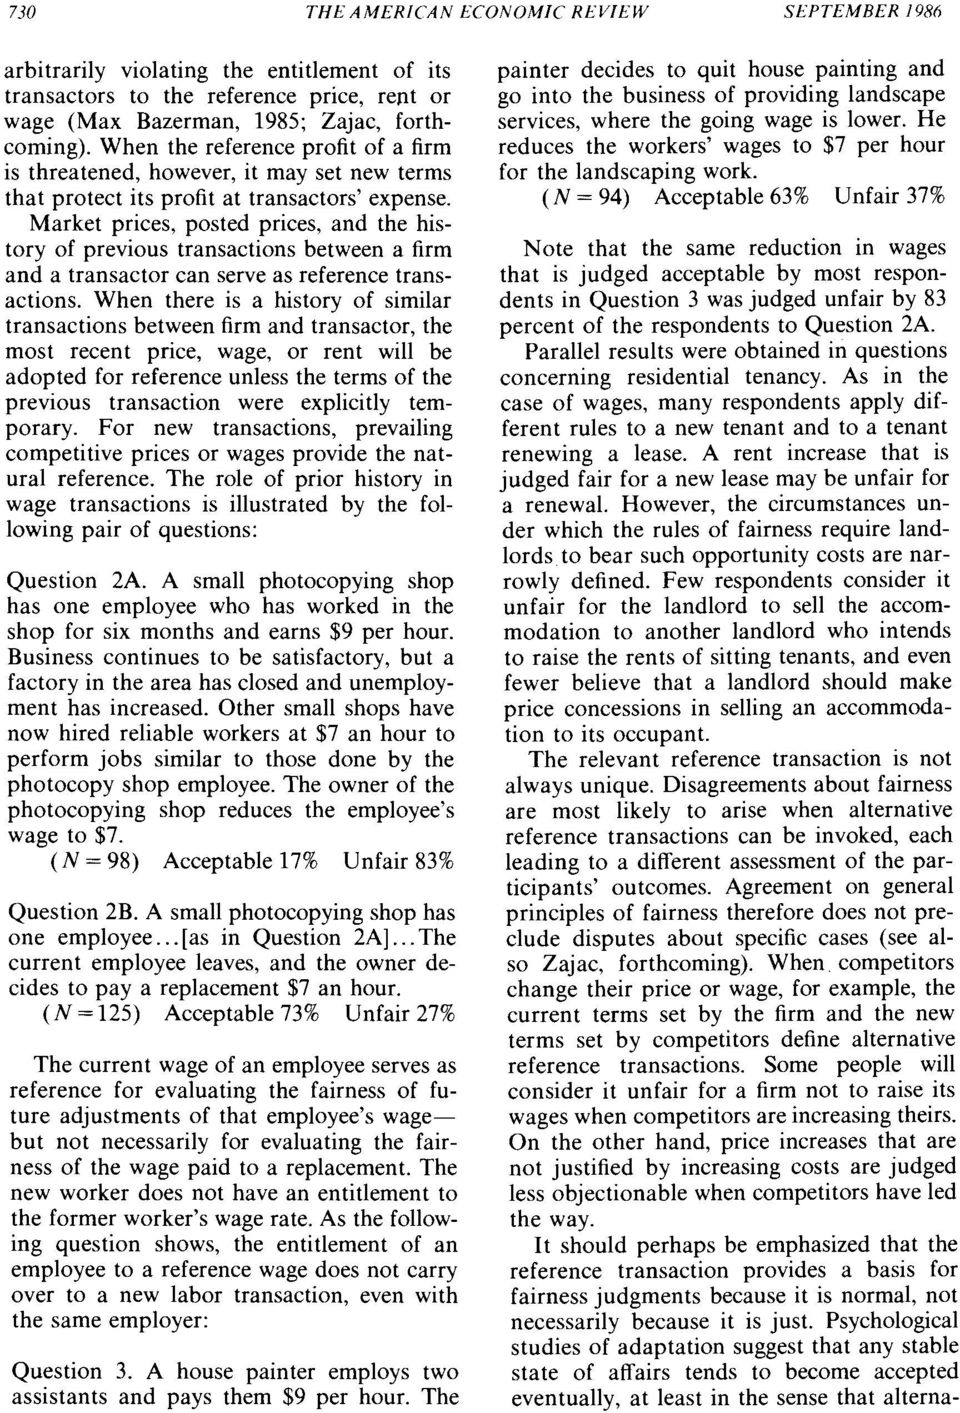 Market prices, posted prices, and the history of previous transactions between a firm and a transactor can serve as reference transactions.